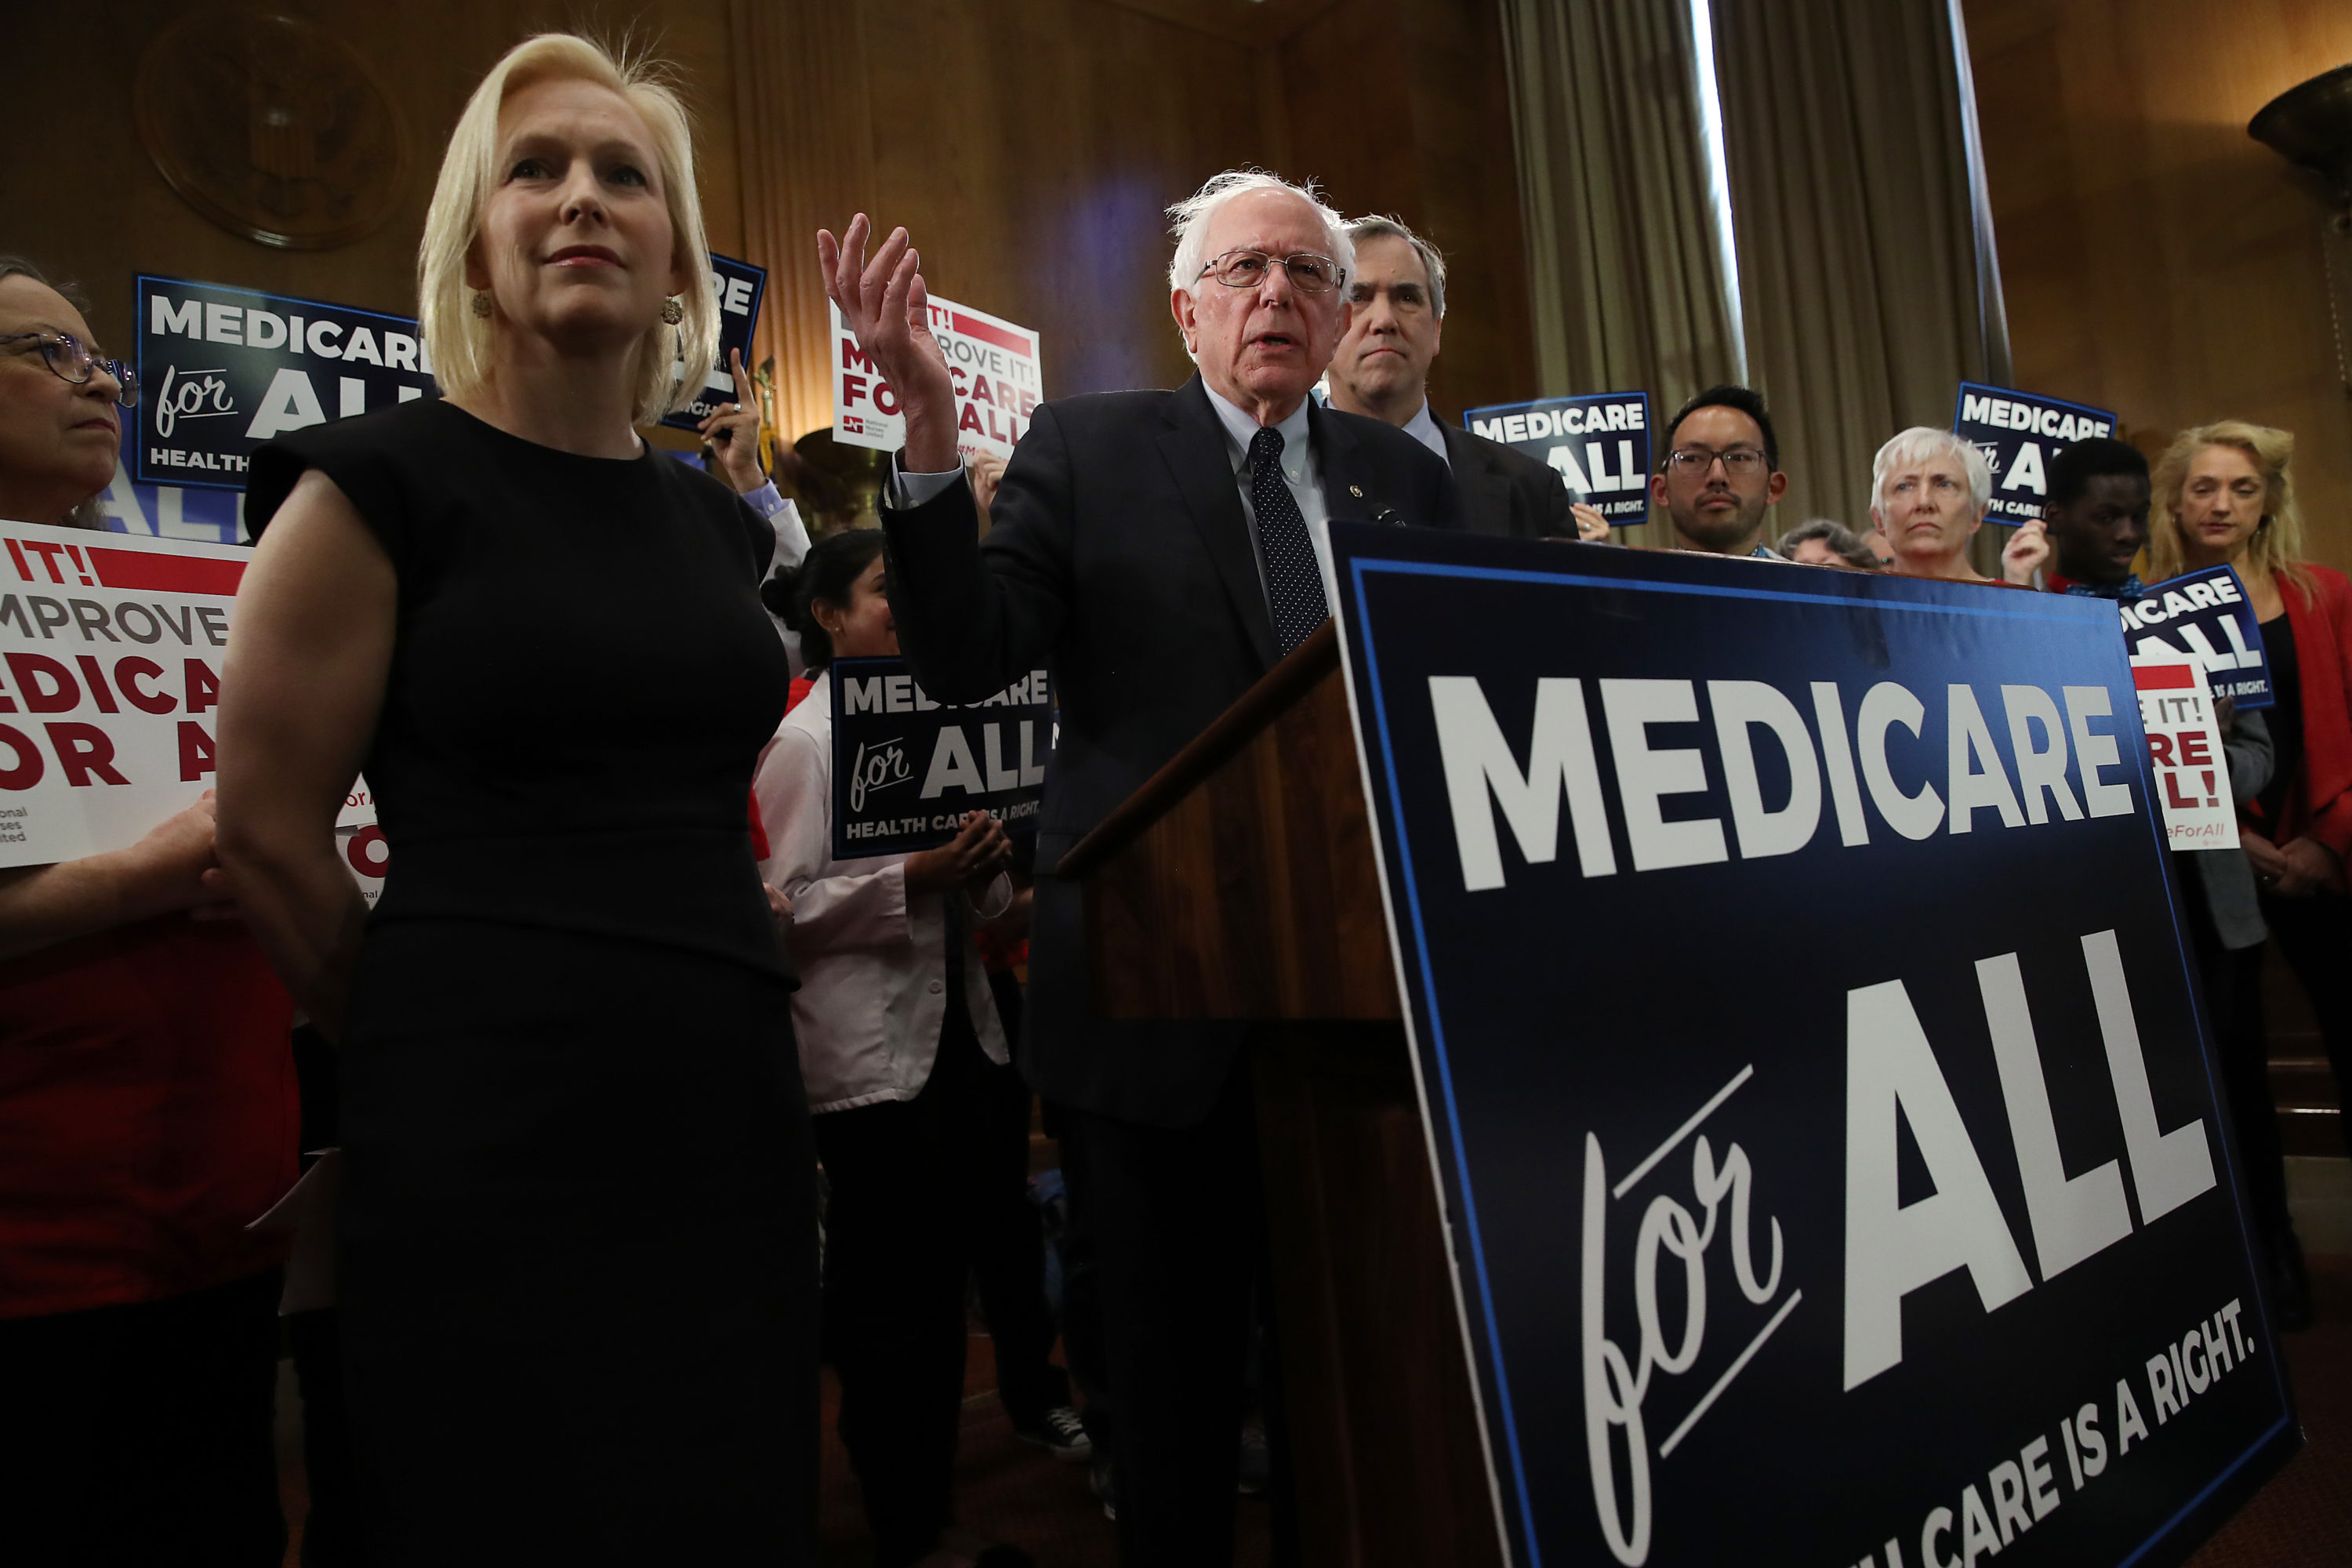 Medicare For All Could Be Kryptonite For Dems in 2020